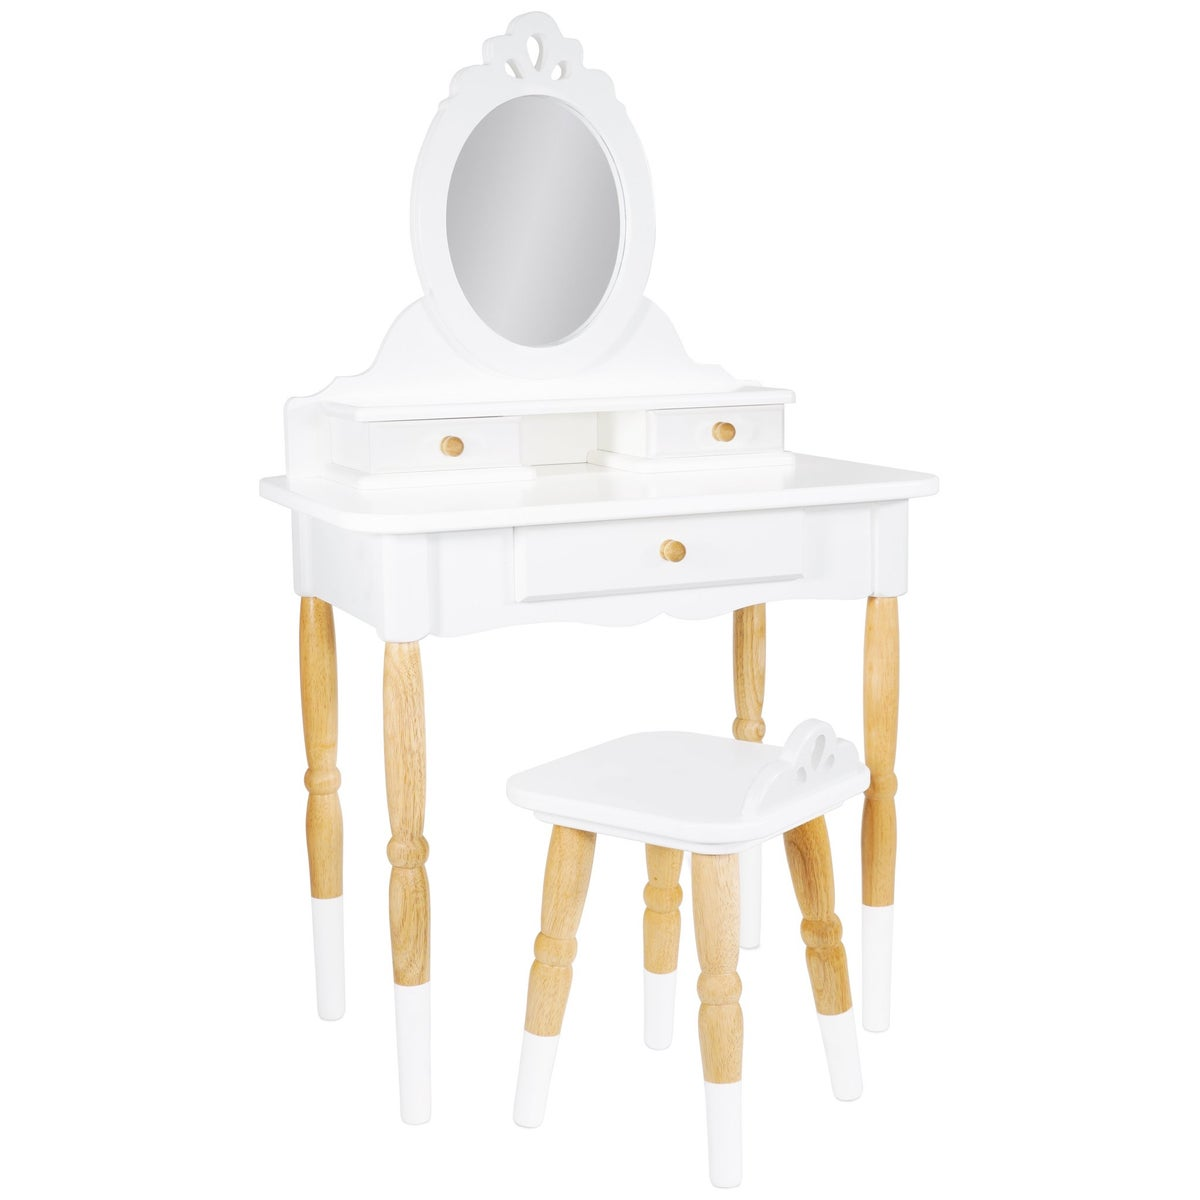 Image of White & Wood Vanity Table (expected September)